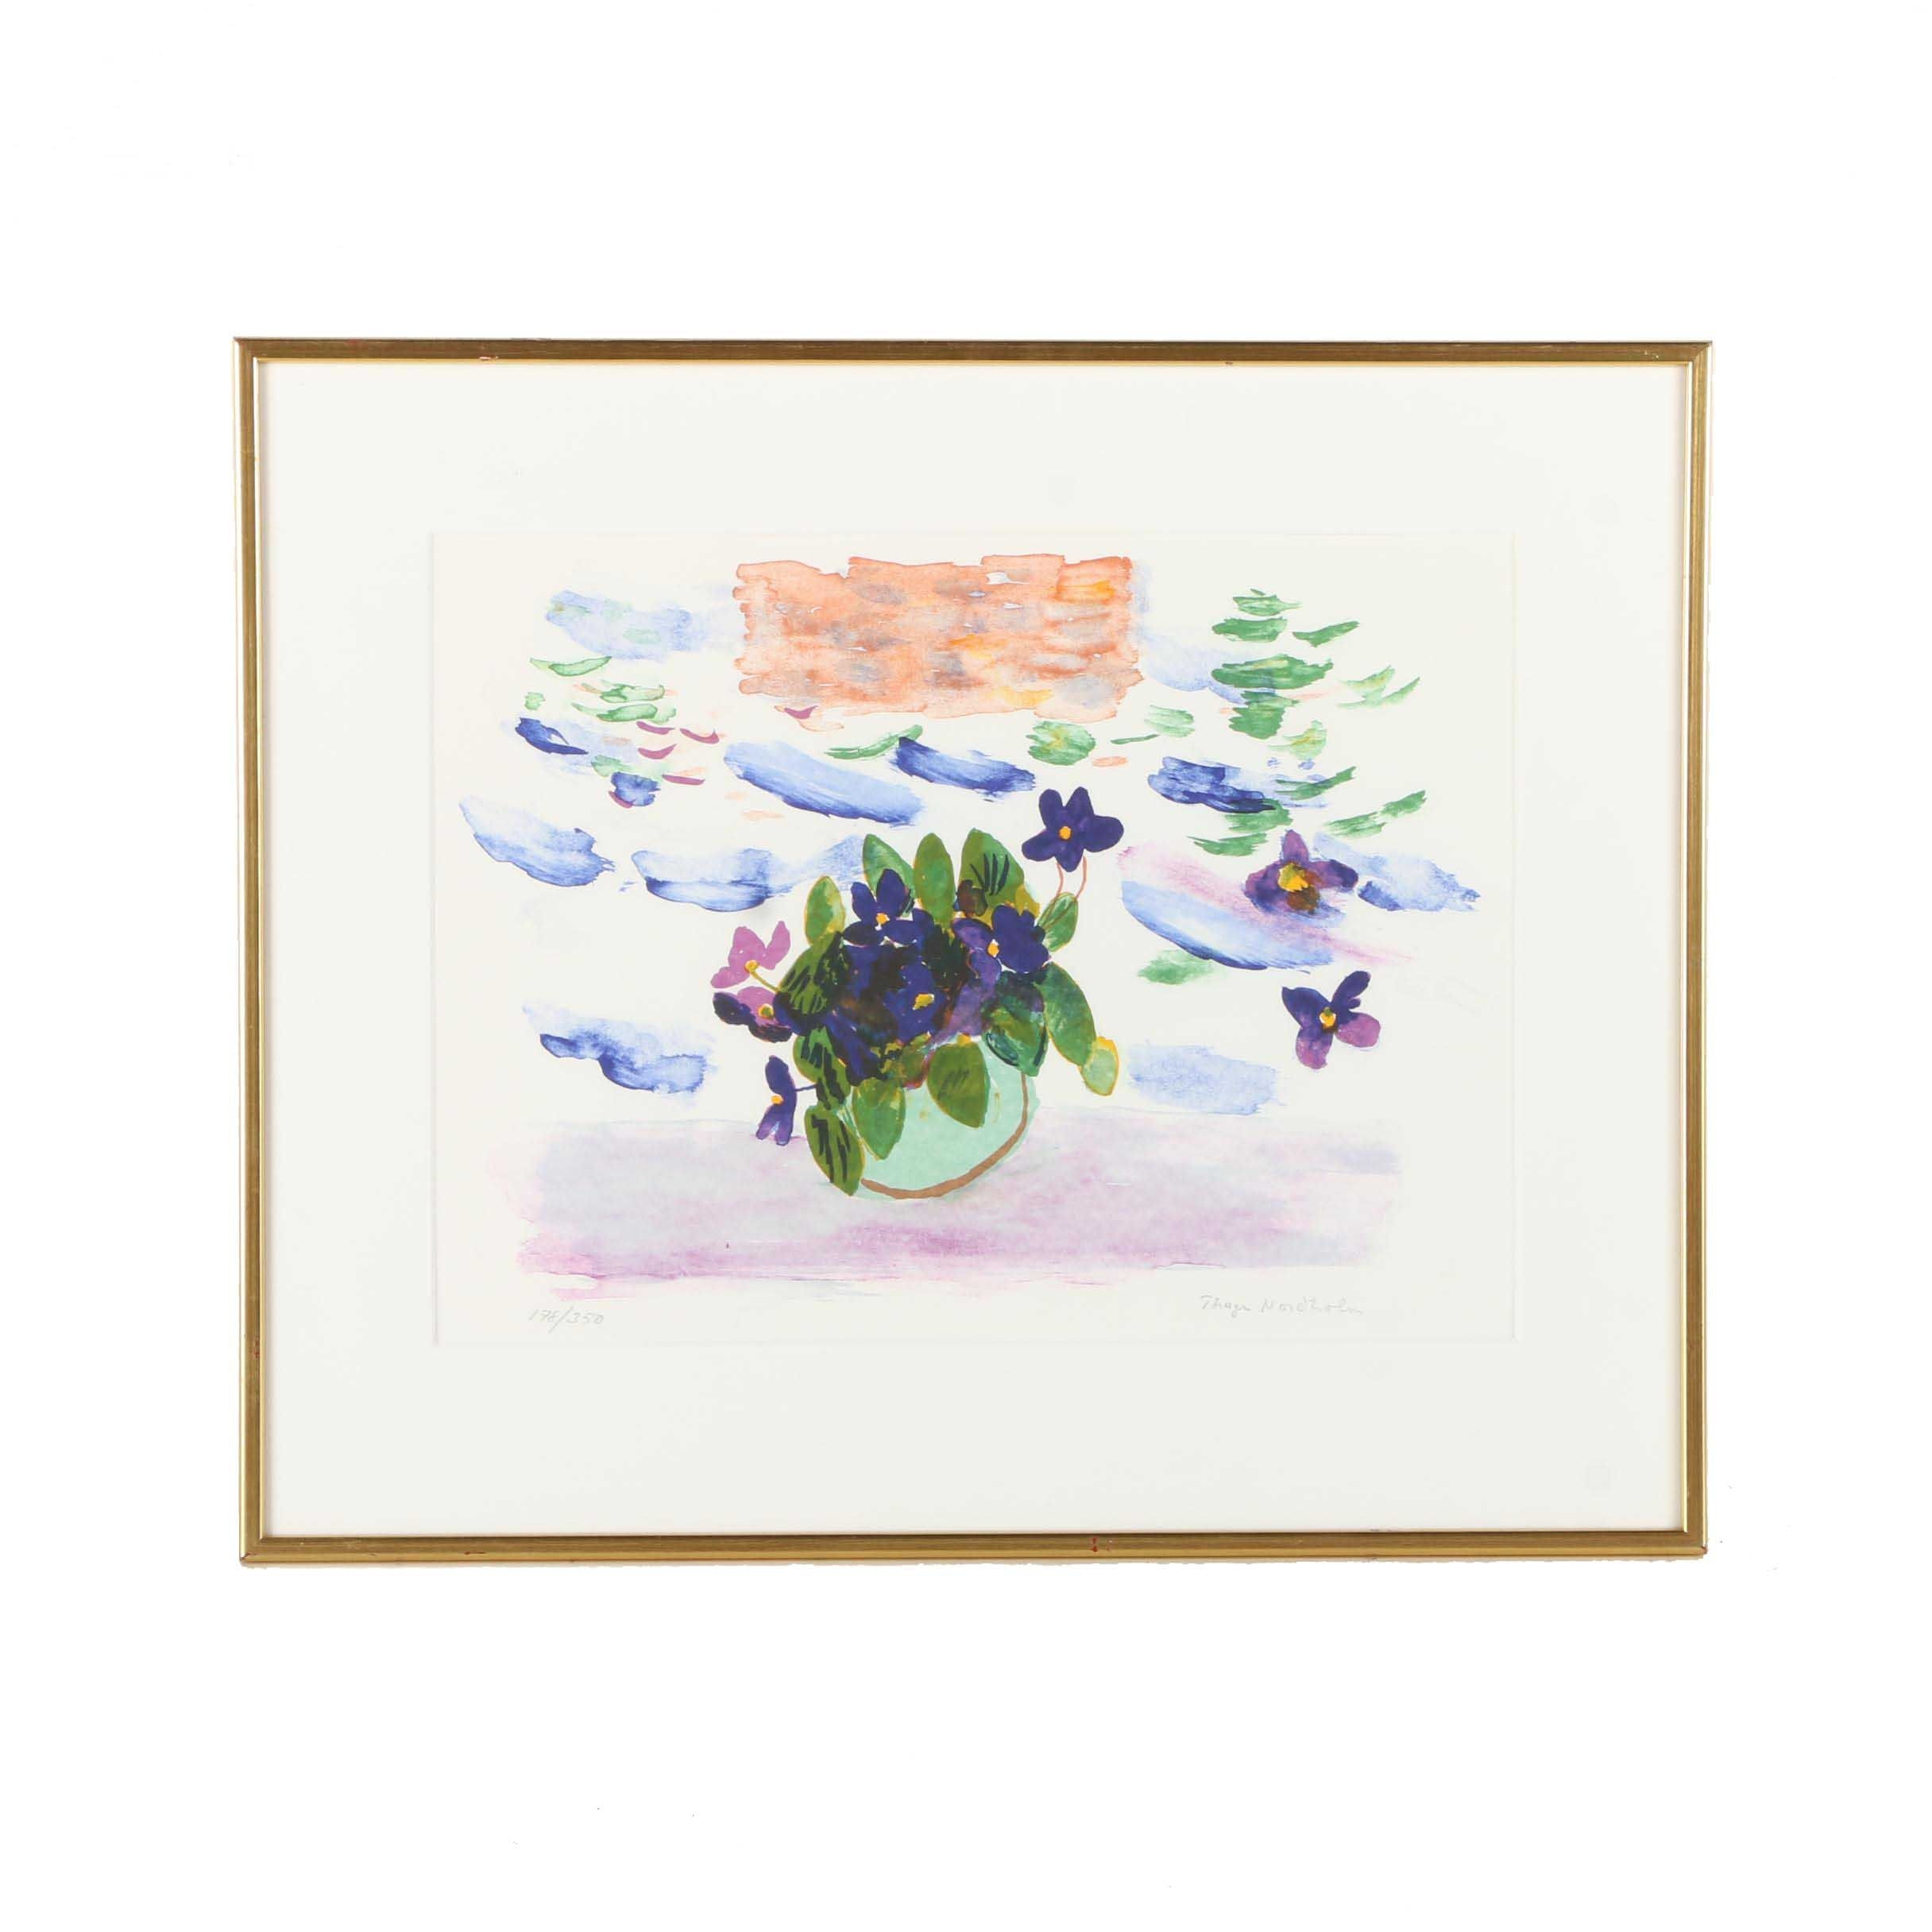 Limited Edition Lithograph of Flowers After Thage Nordholm